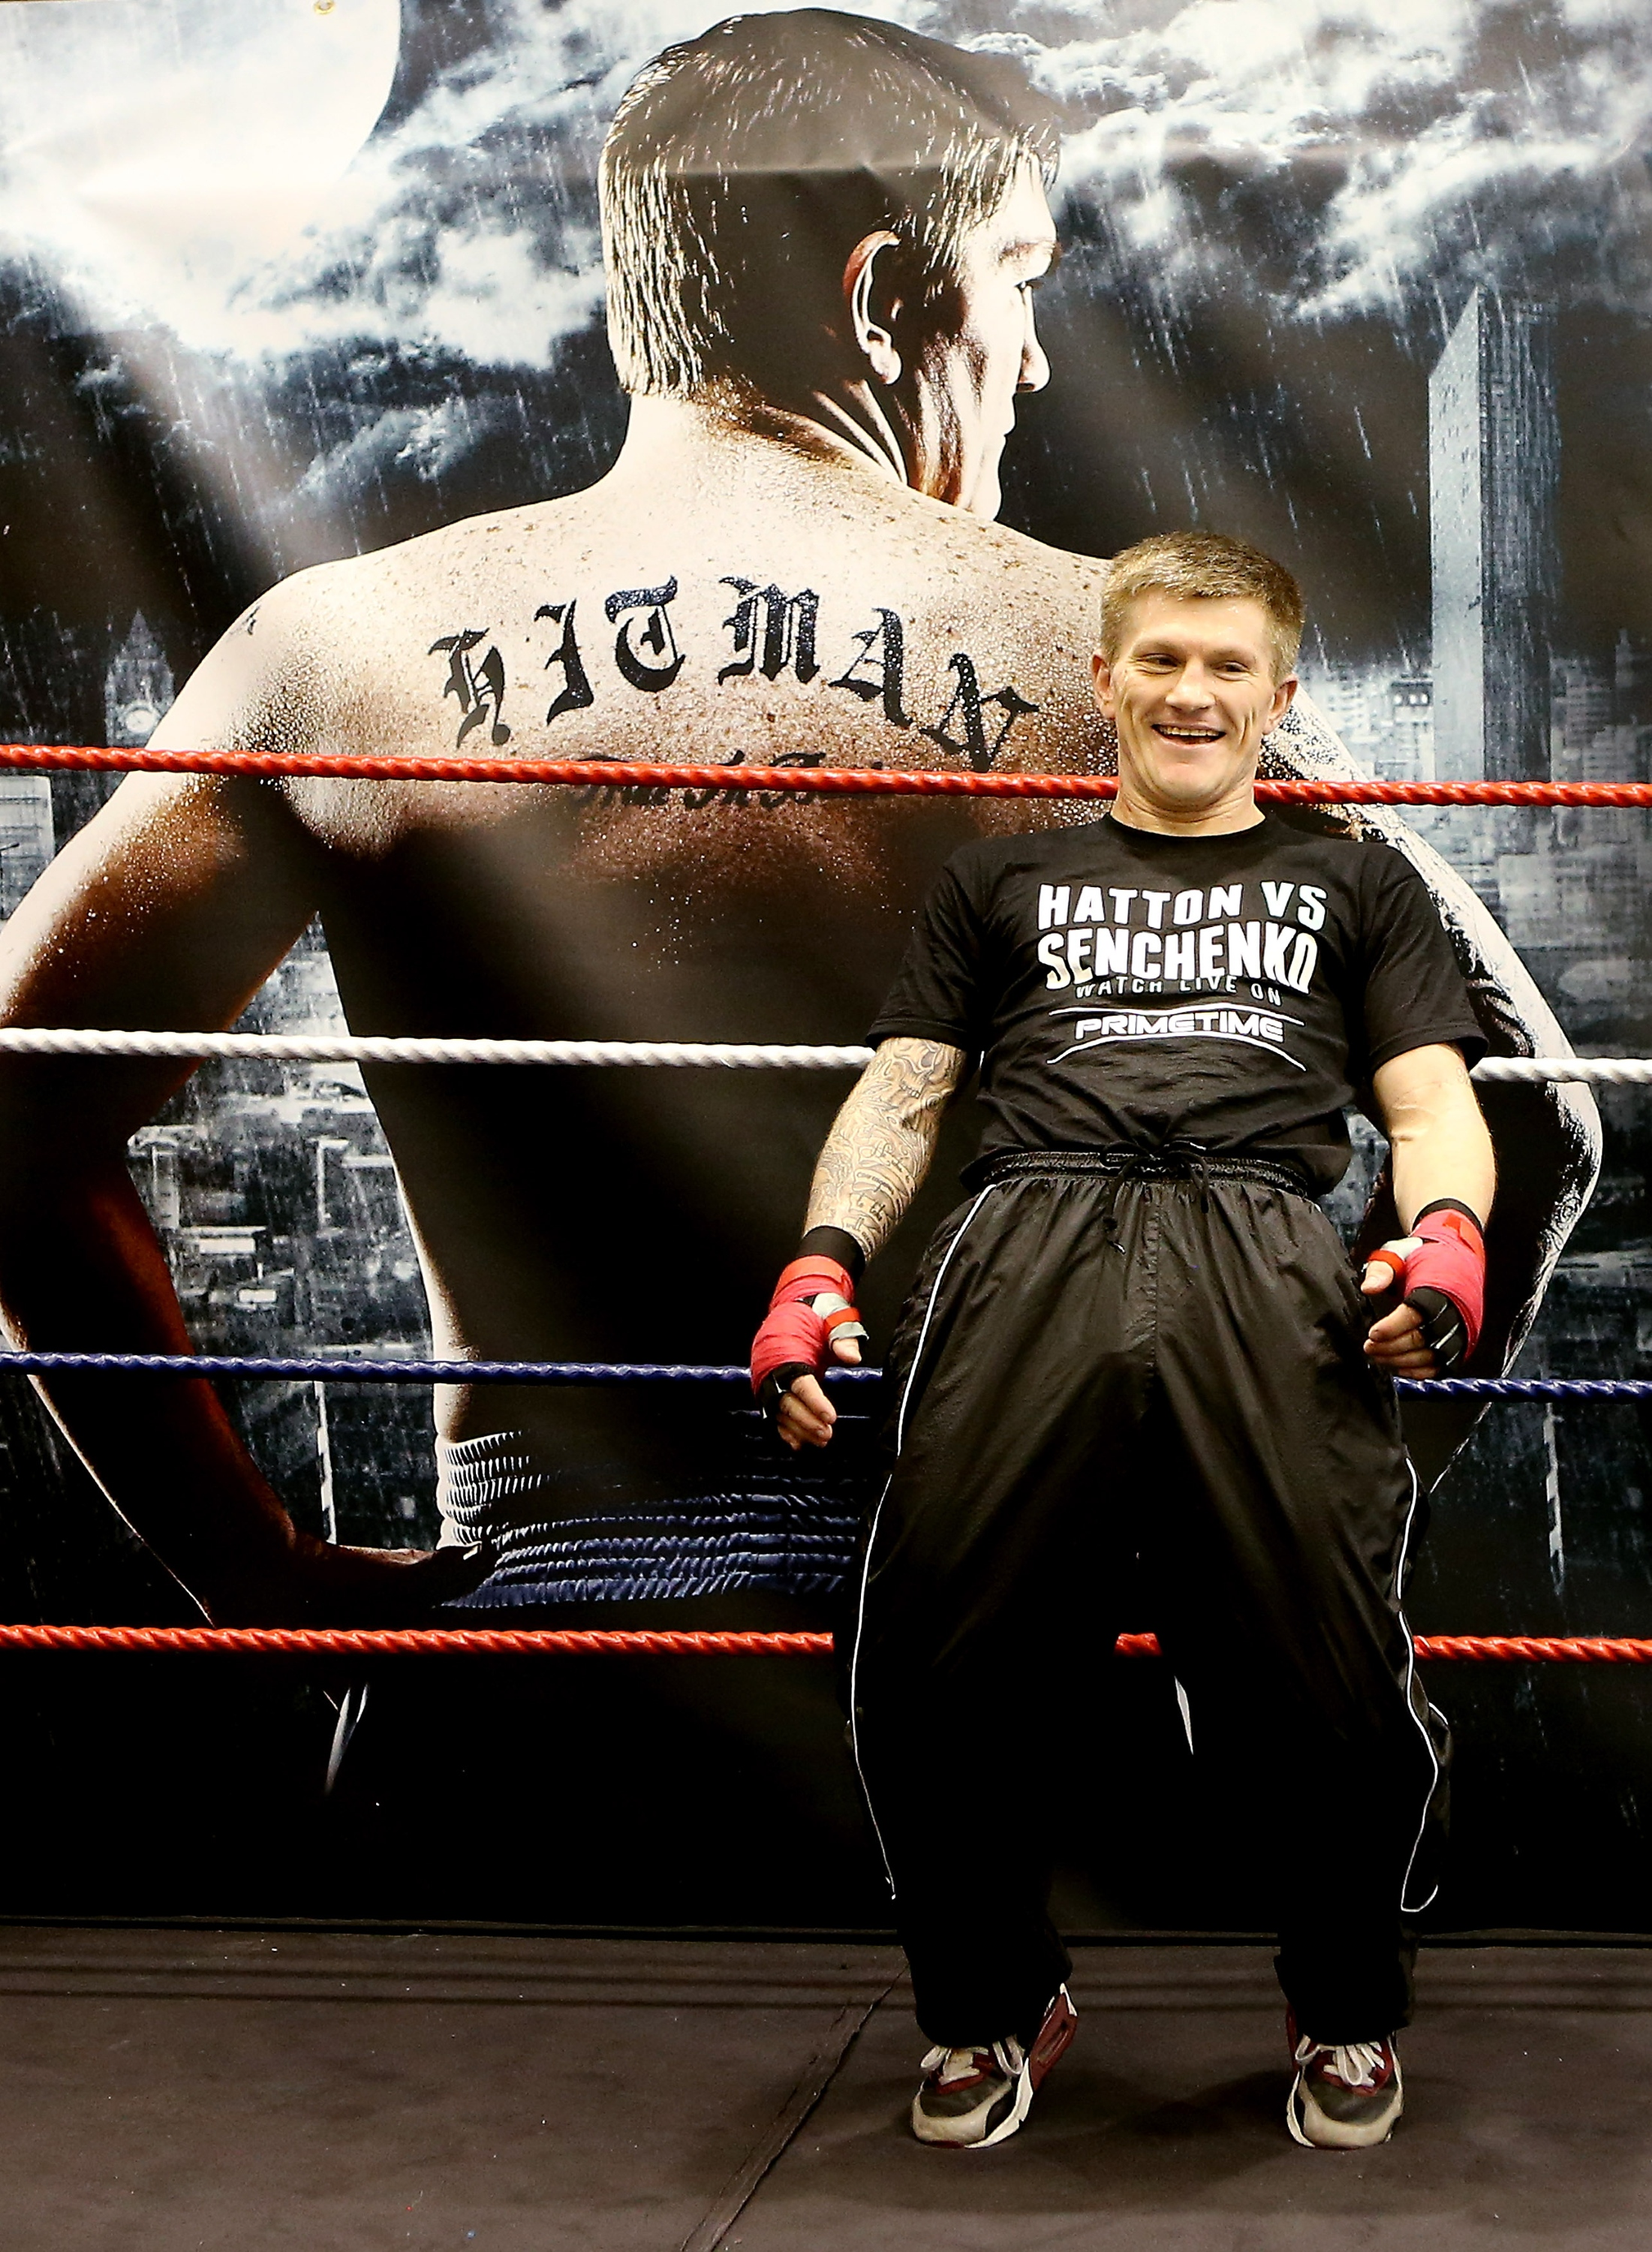 Ricky Hatton laughs during a workout in front of media in Manchester, England. (Getty)